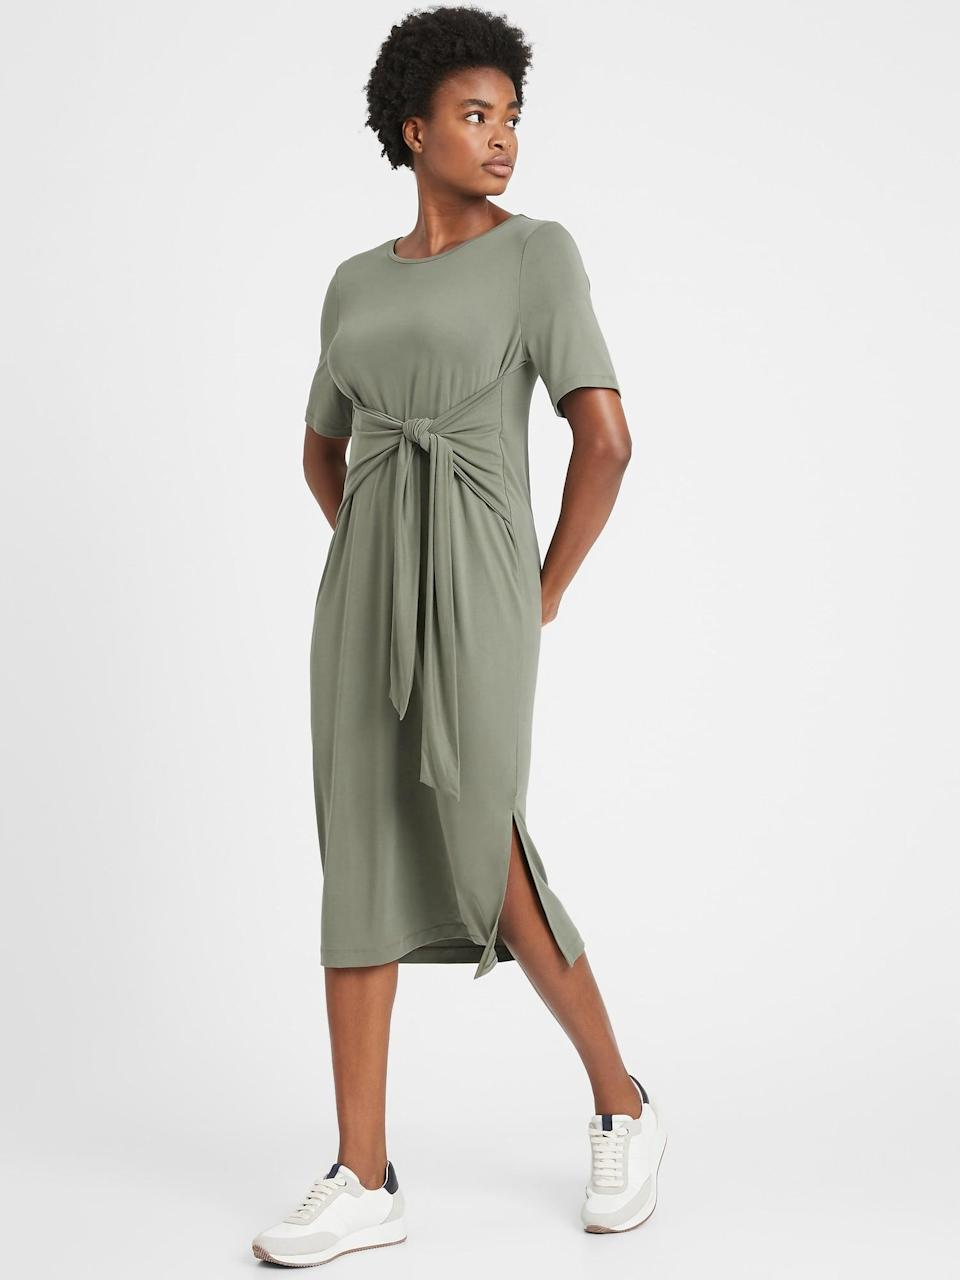 <p>Pair a <span>Banana Republic Sandwash Modal Twist-Front Dress</span> ($39, originally $99) with sneakers and a denim jacket for spring. </p>